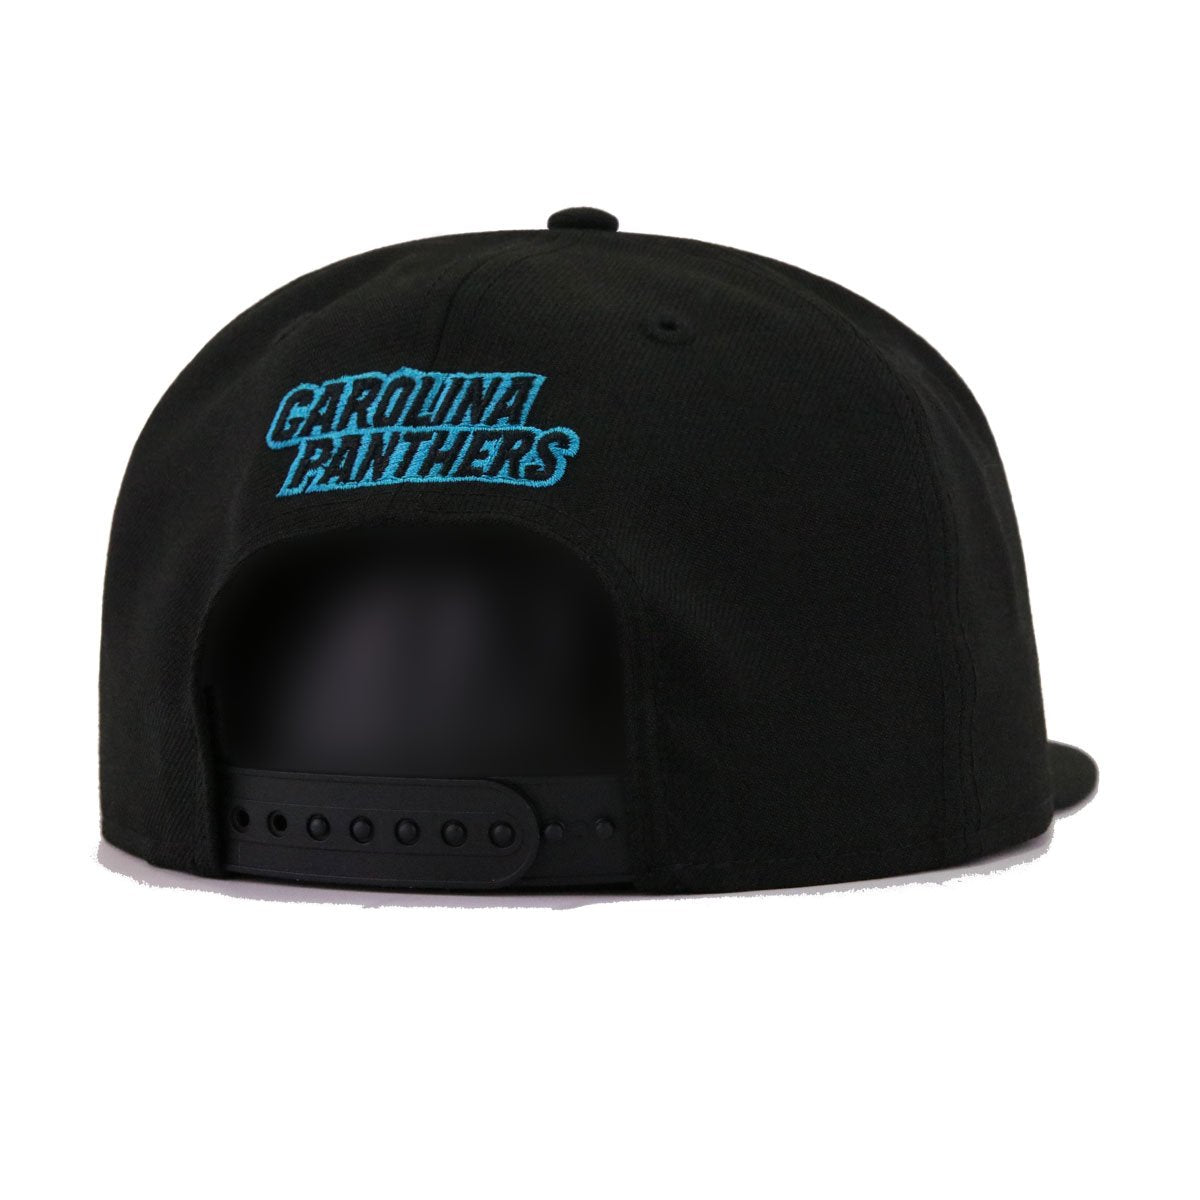 82d3c0e57 Carolina Panthers Black Sunwash Blue New Era 9Fifty Snapback